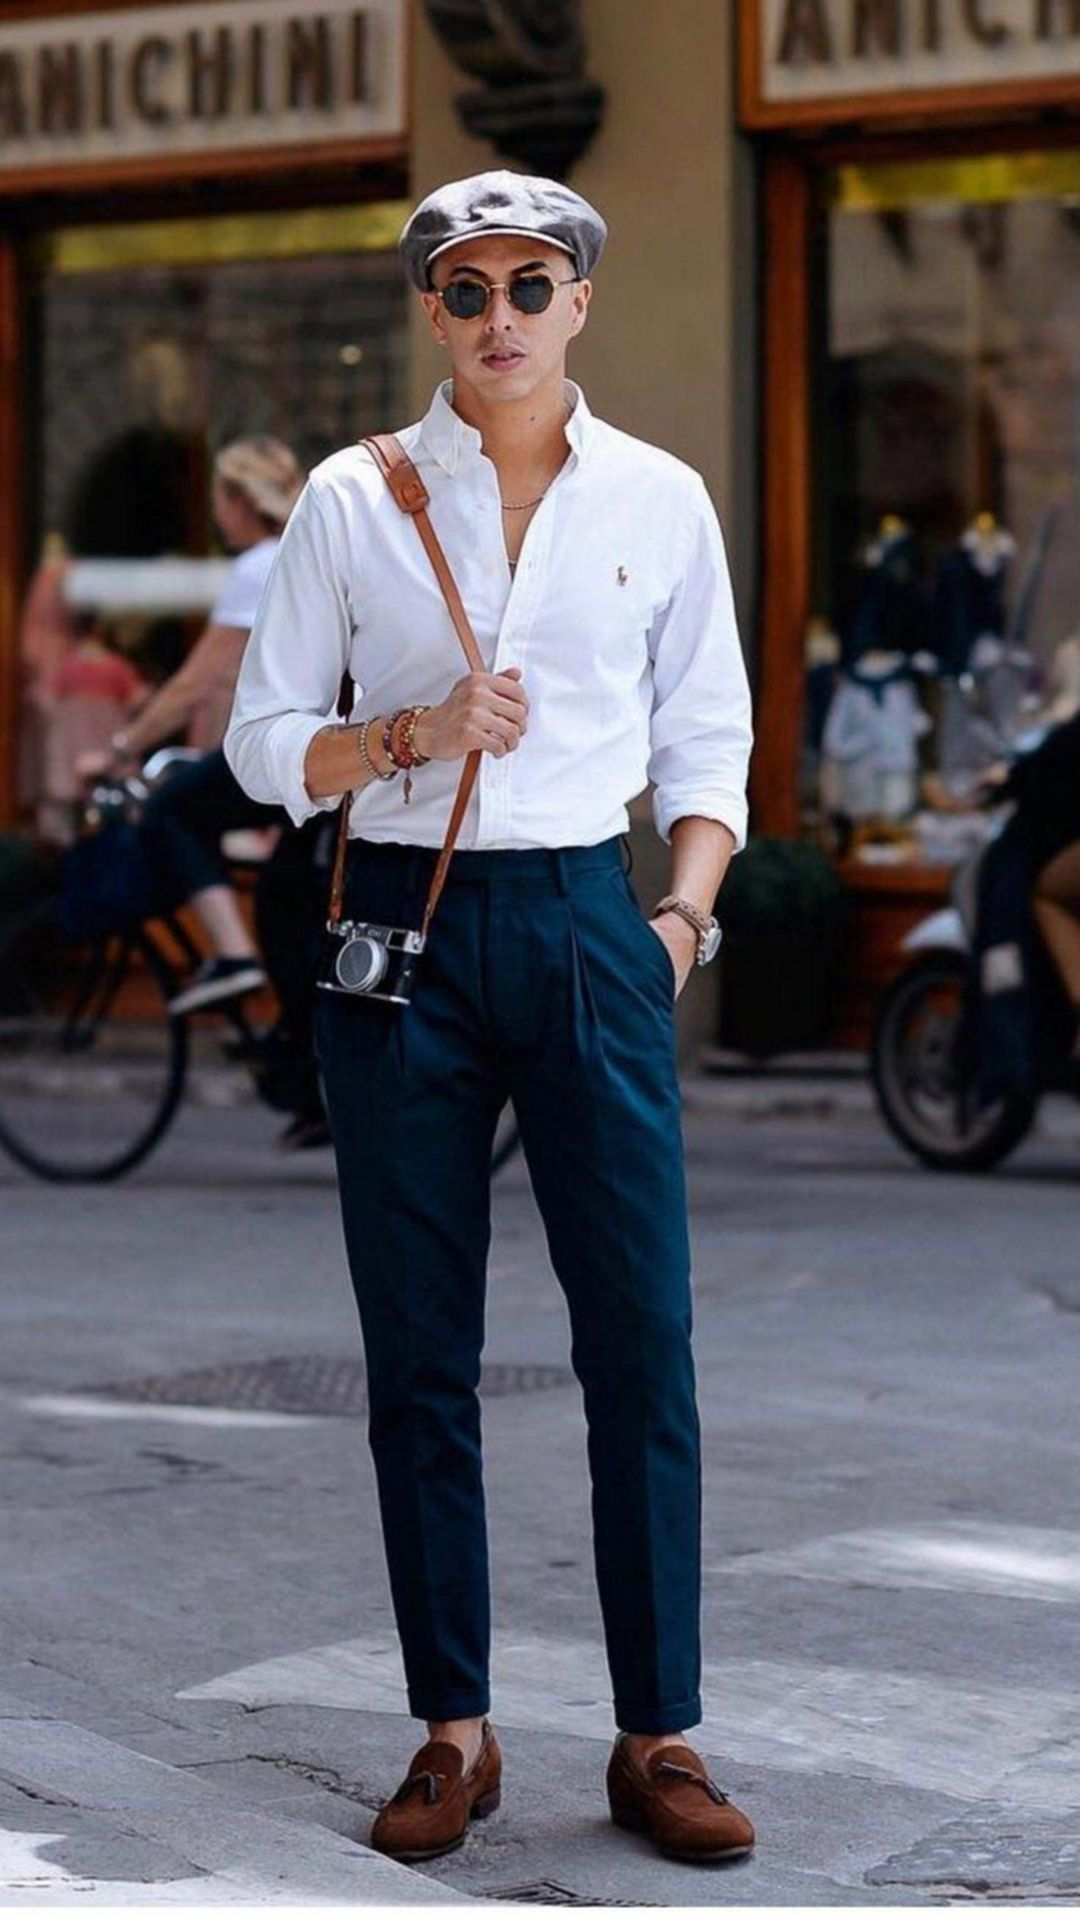 10 Simple Men's Street Styles You Can Copy For Dating